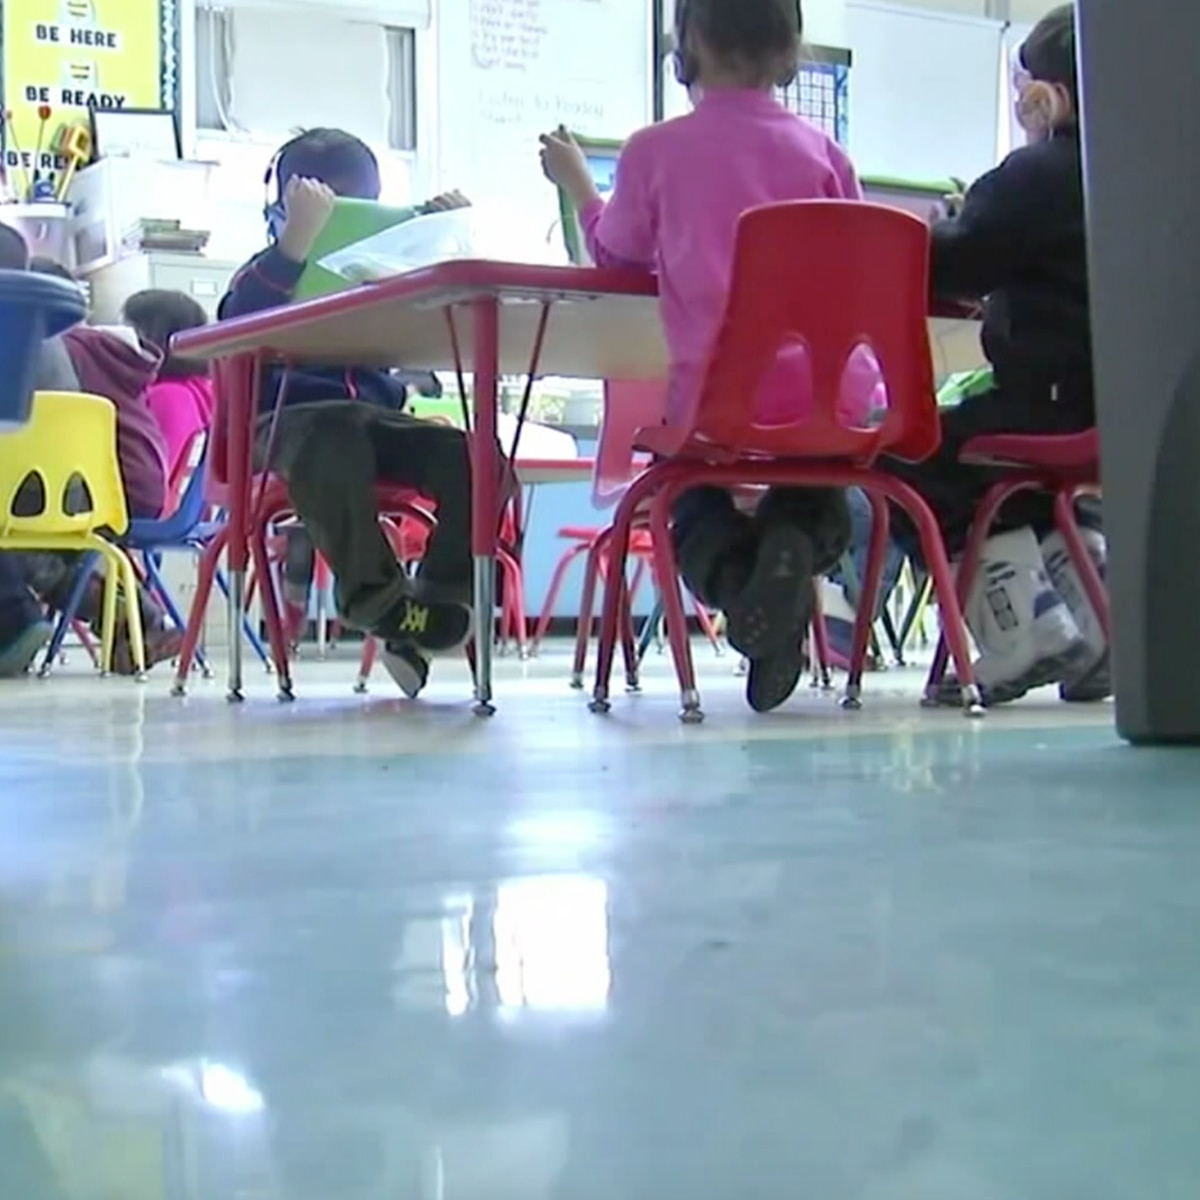 School districts preparing social and emotional programs to check on kids virtually